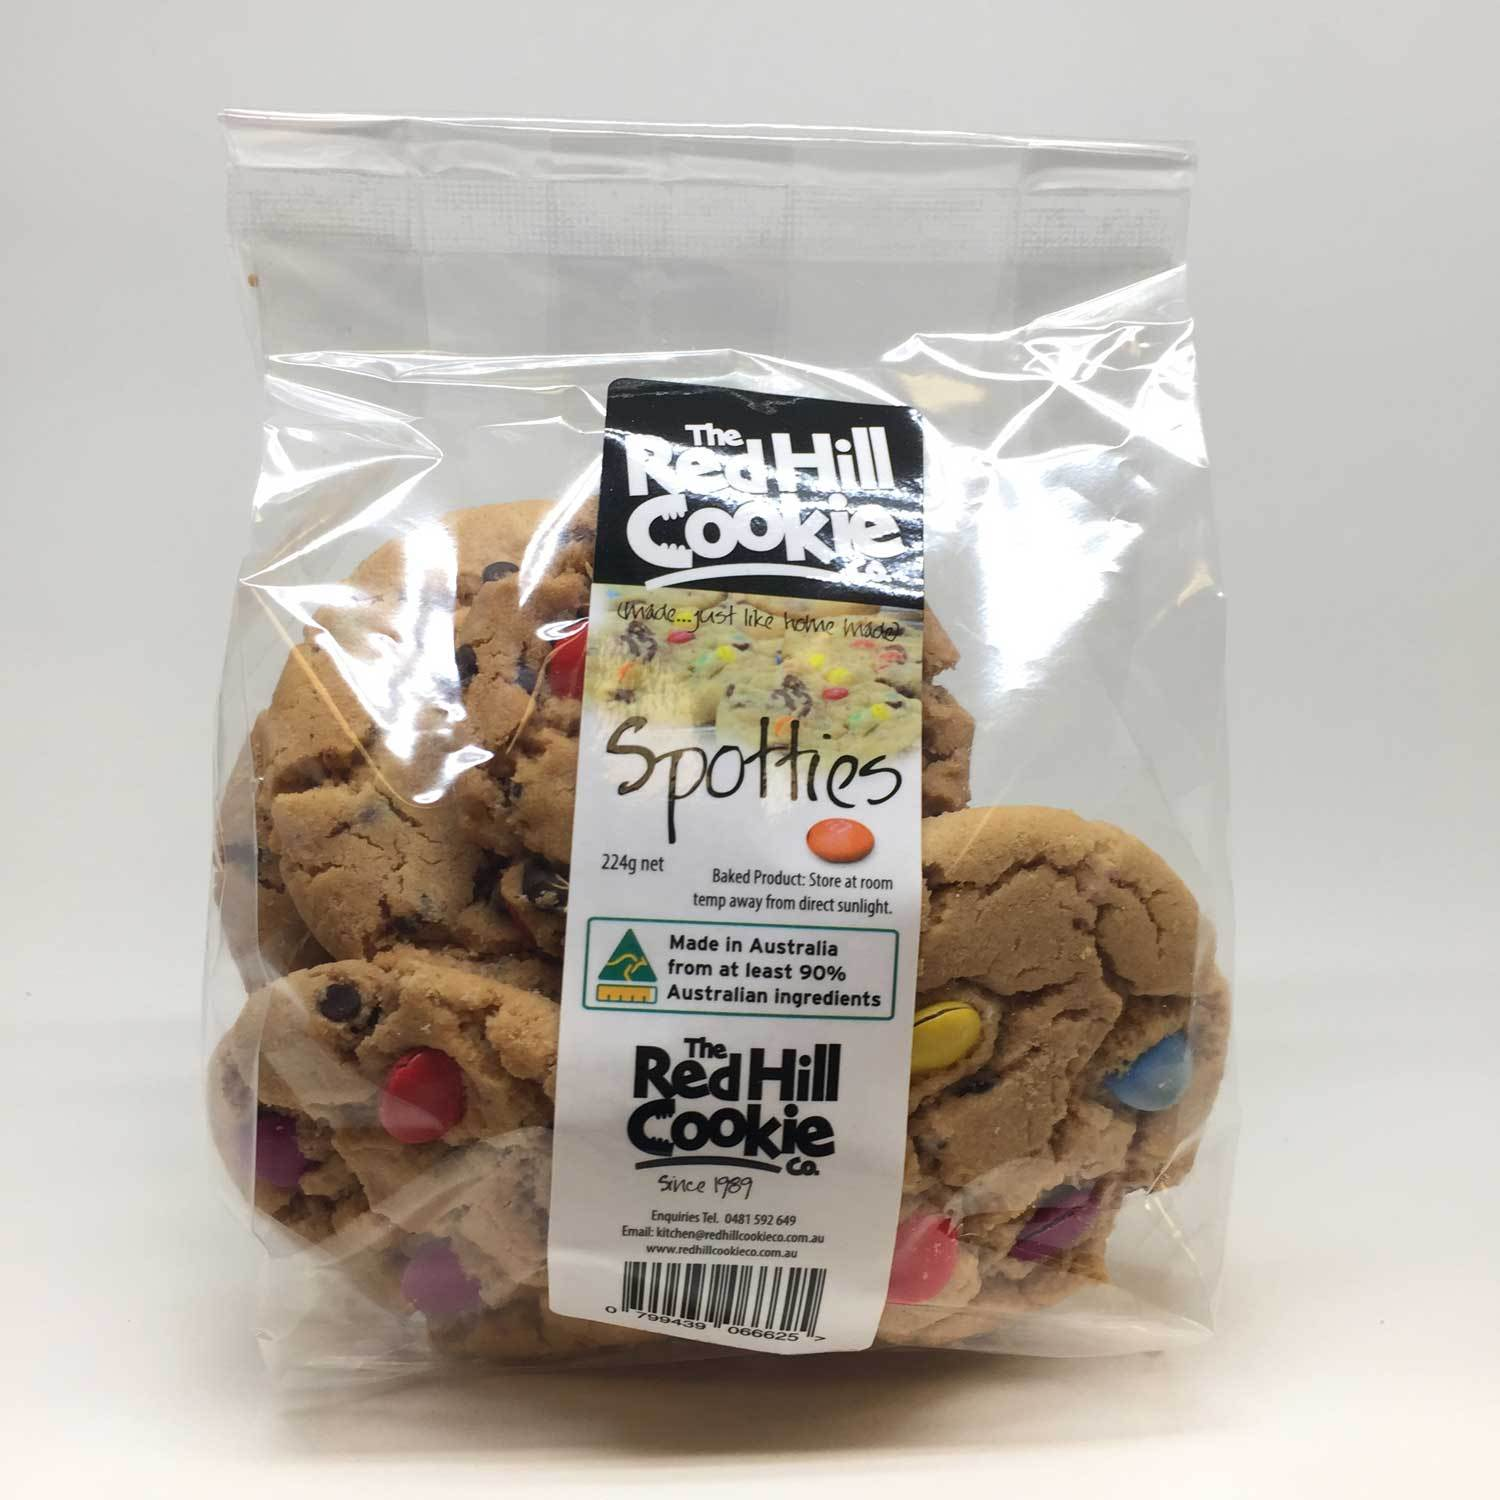 The Red Hill Cookie Co Spotties Cookies 240g-The Red Hill Cookie Co-Fresh Connection